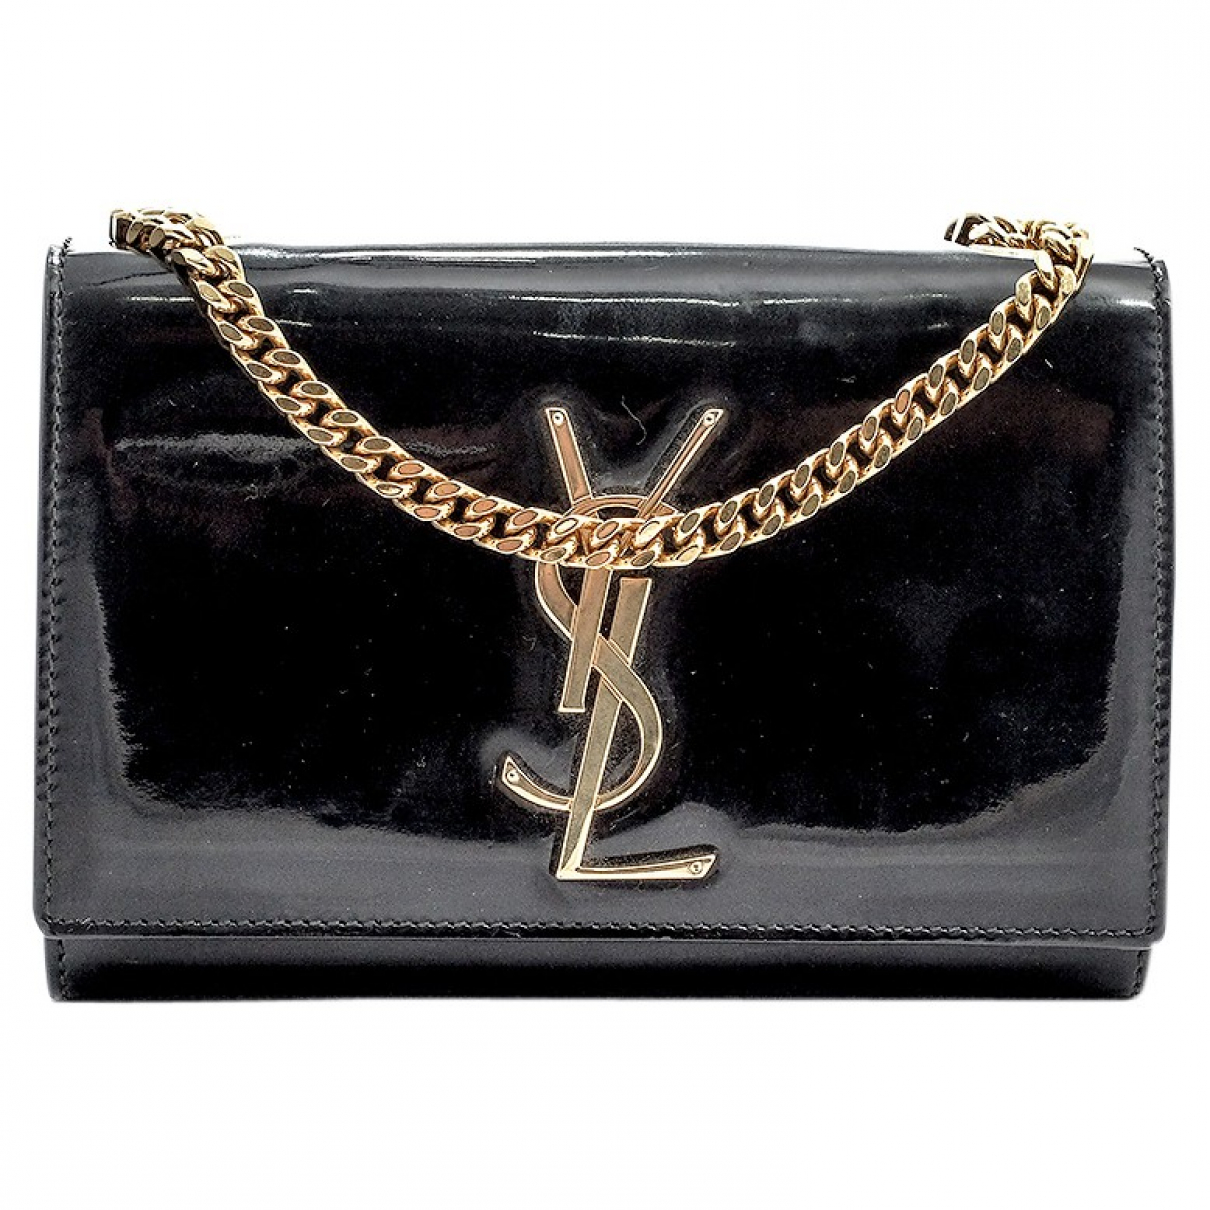 Saint Laurent Kate monogramme Black Patent leather handbag for Women \N